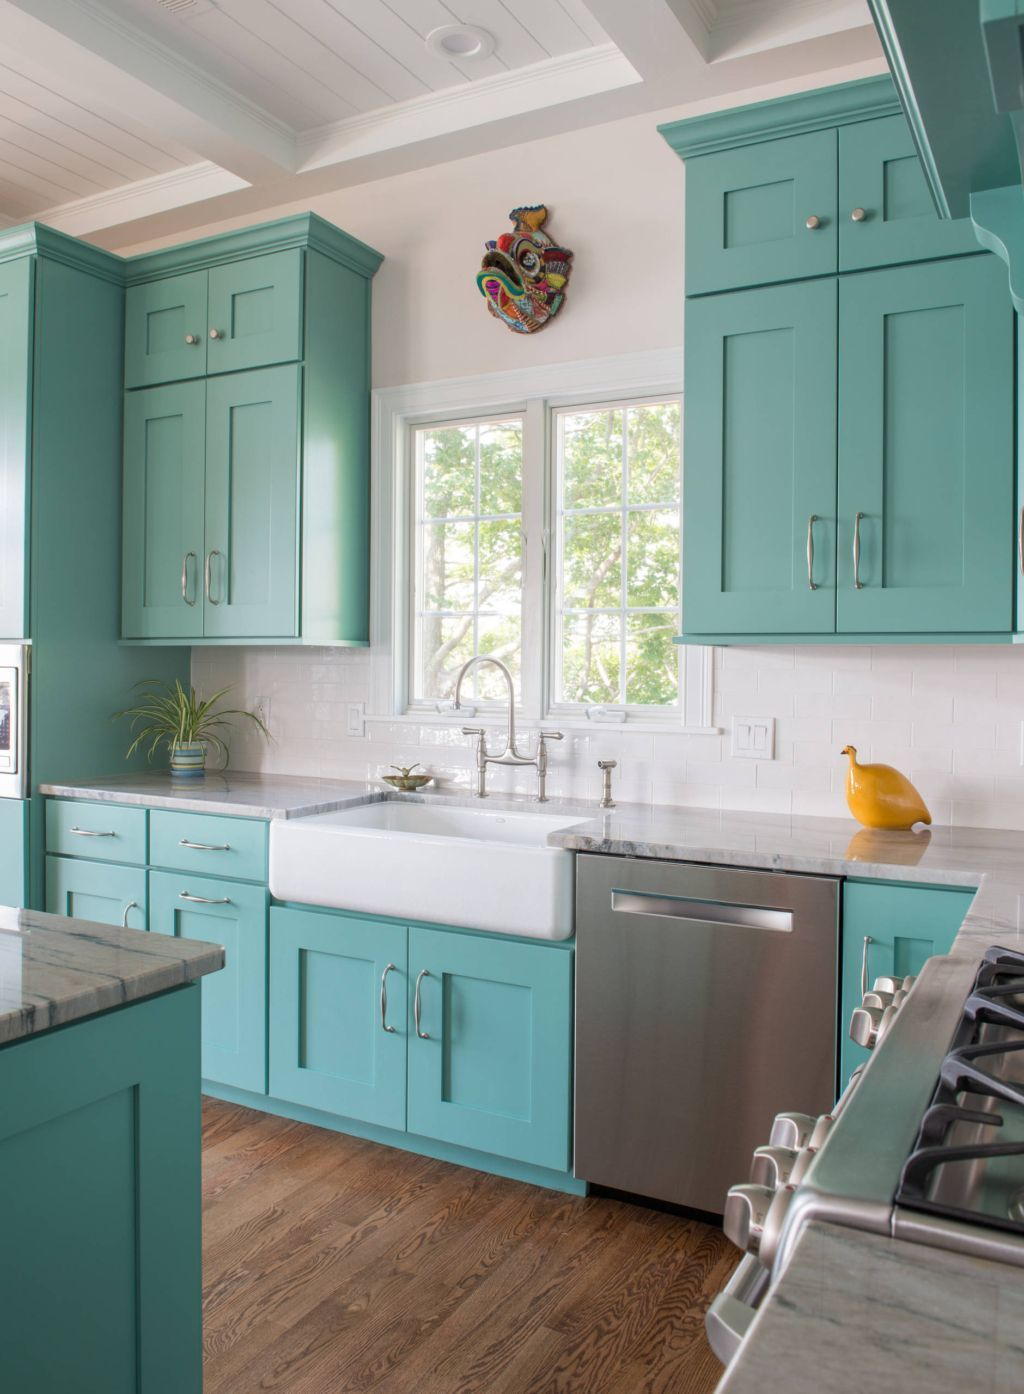 Turquoise Kitchen Cabinets With White Farmhouse Sink Sherwin Williams Co Turquoise Kitchen Cabinets Farmhouse Style Kitchen Cabinets Kitchen Cabinet Styles